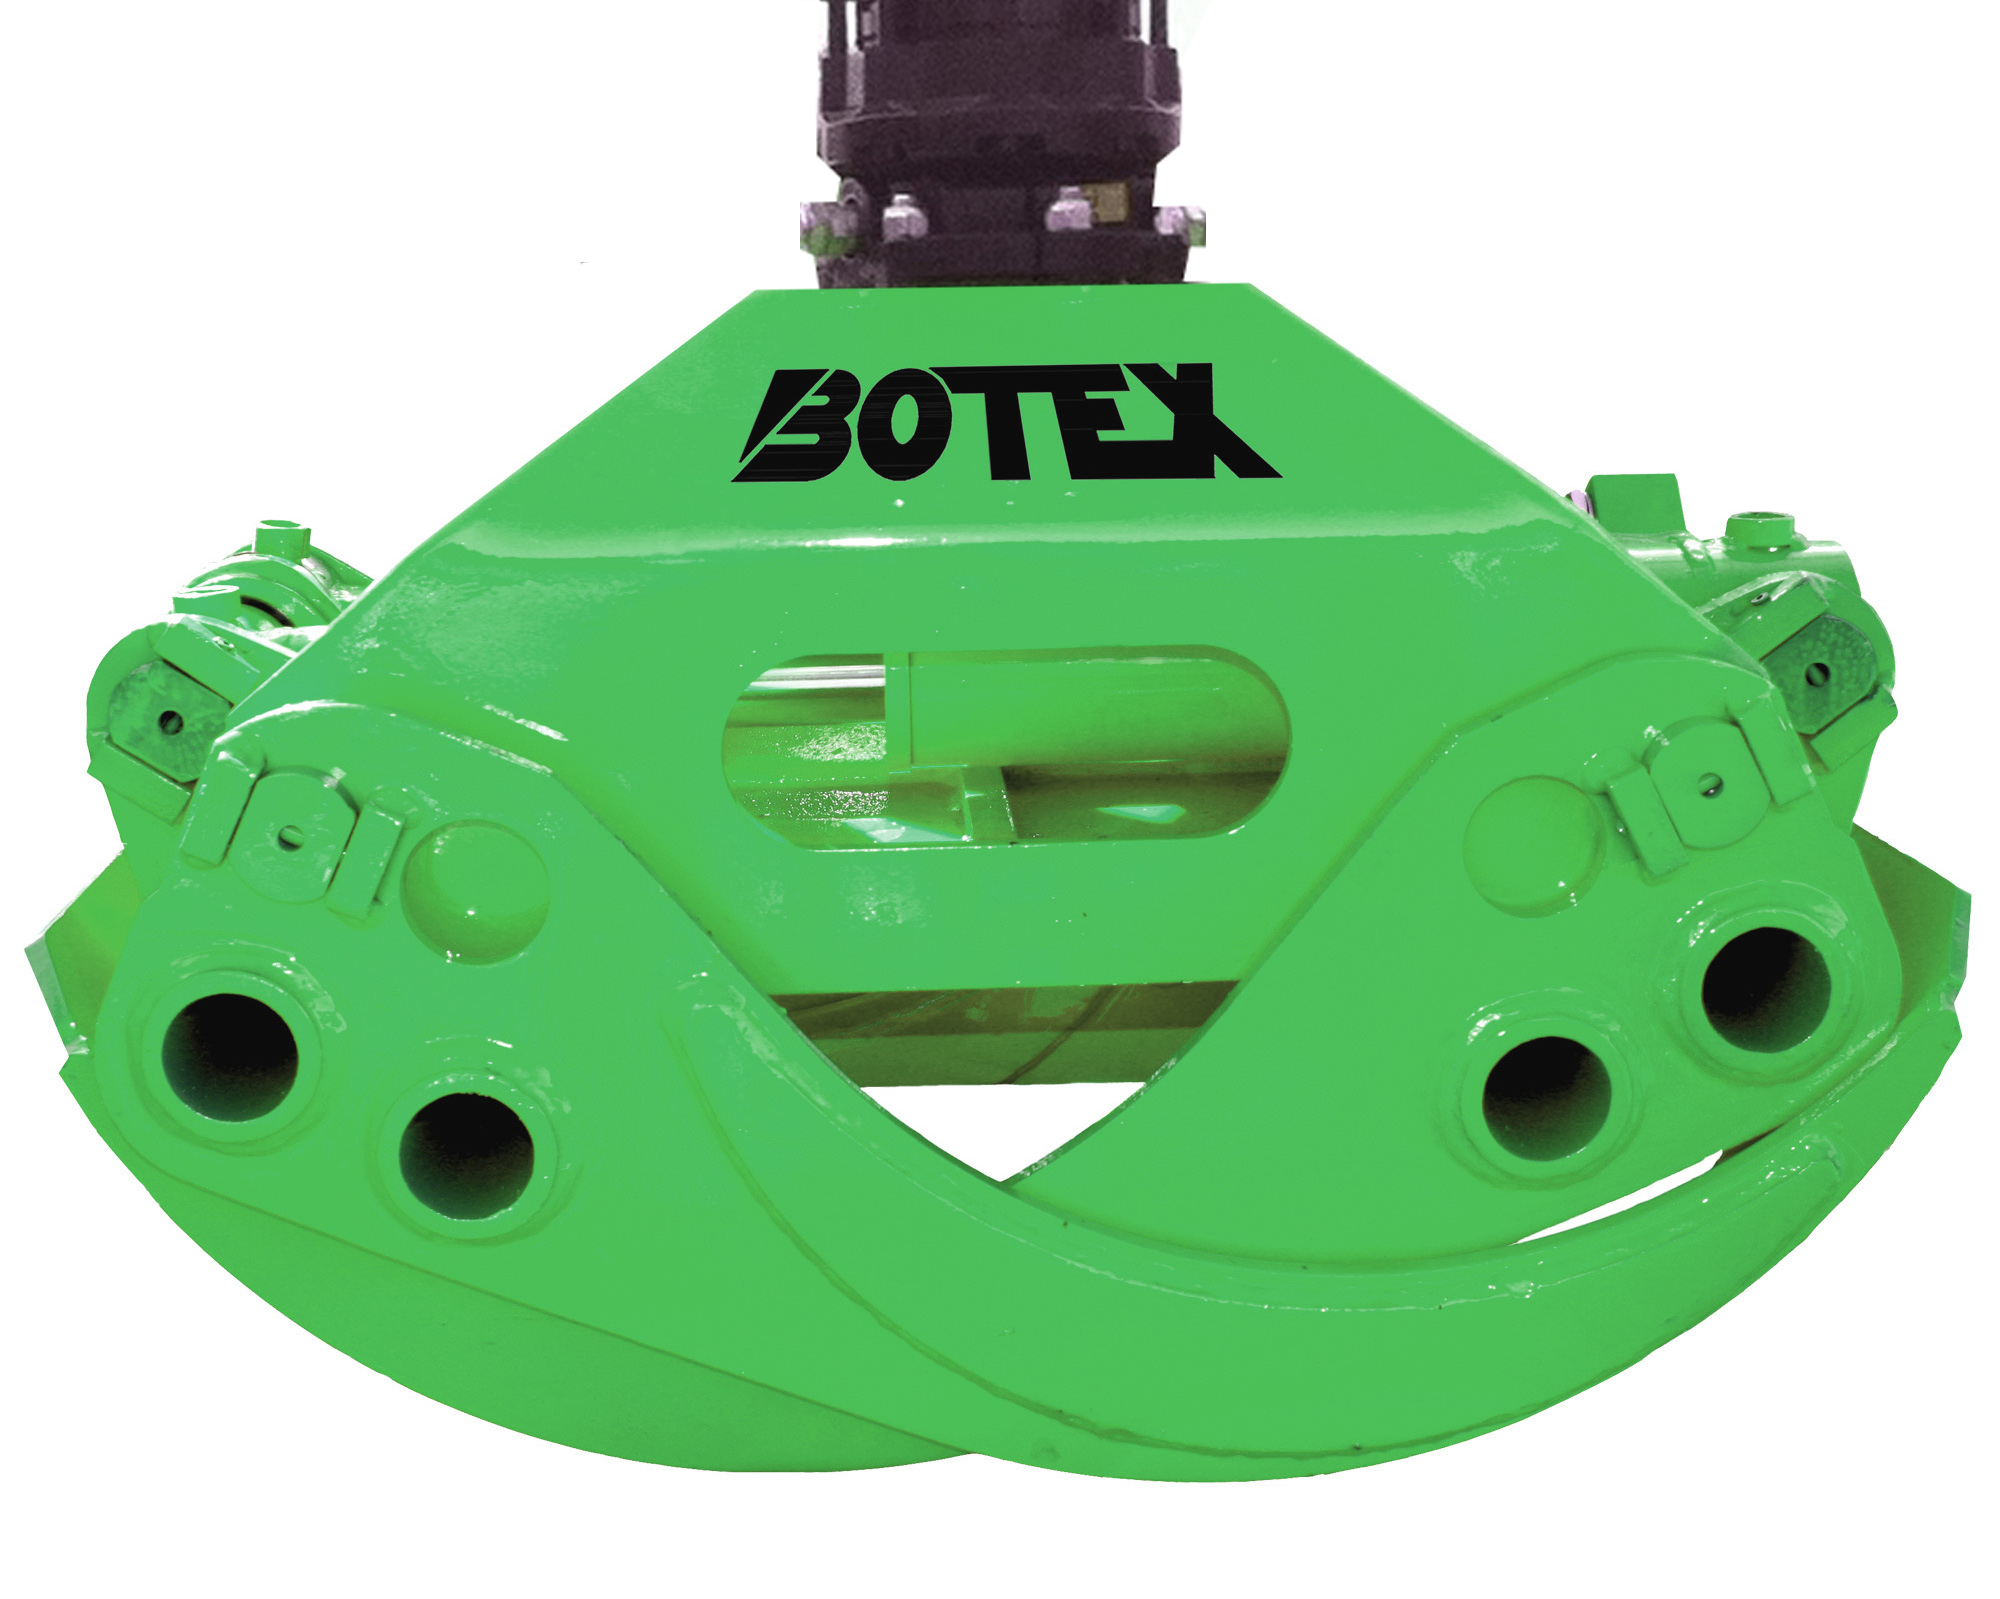 Botex grab and rotator